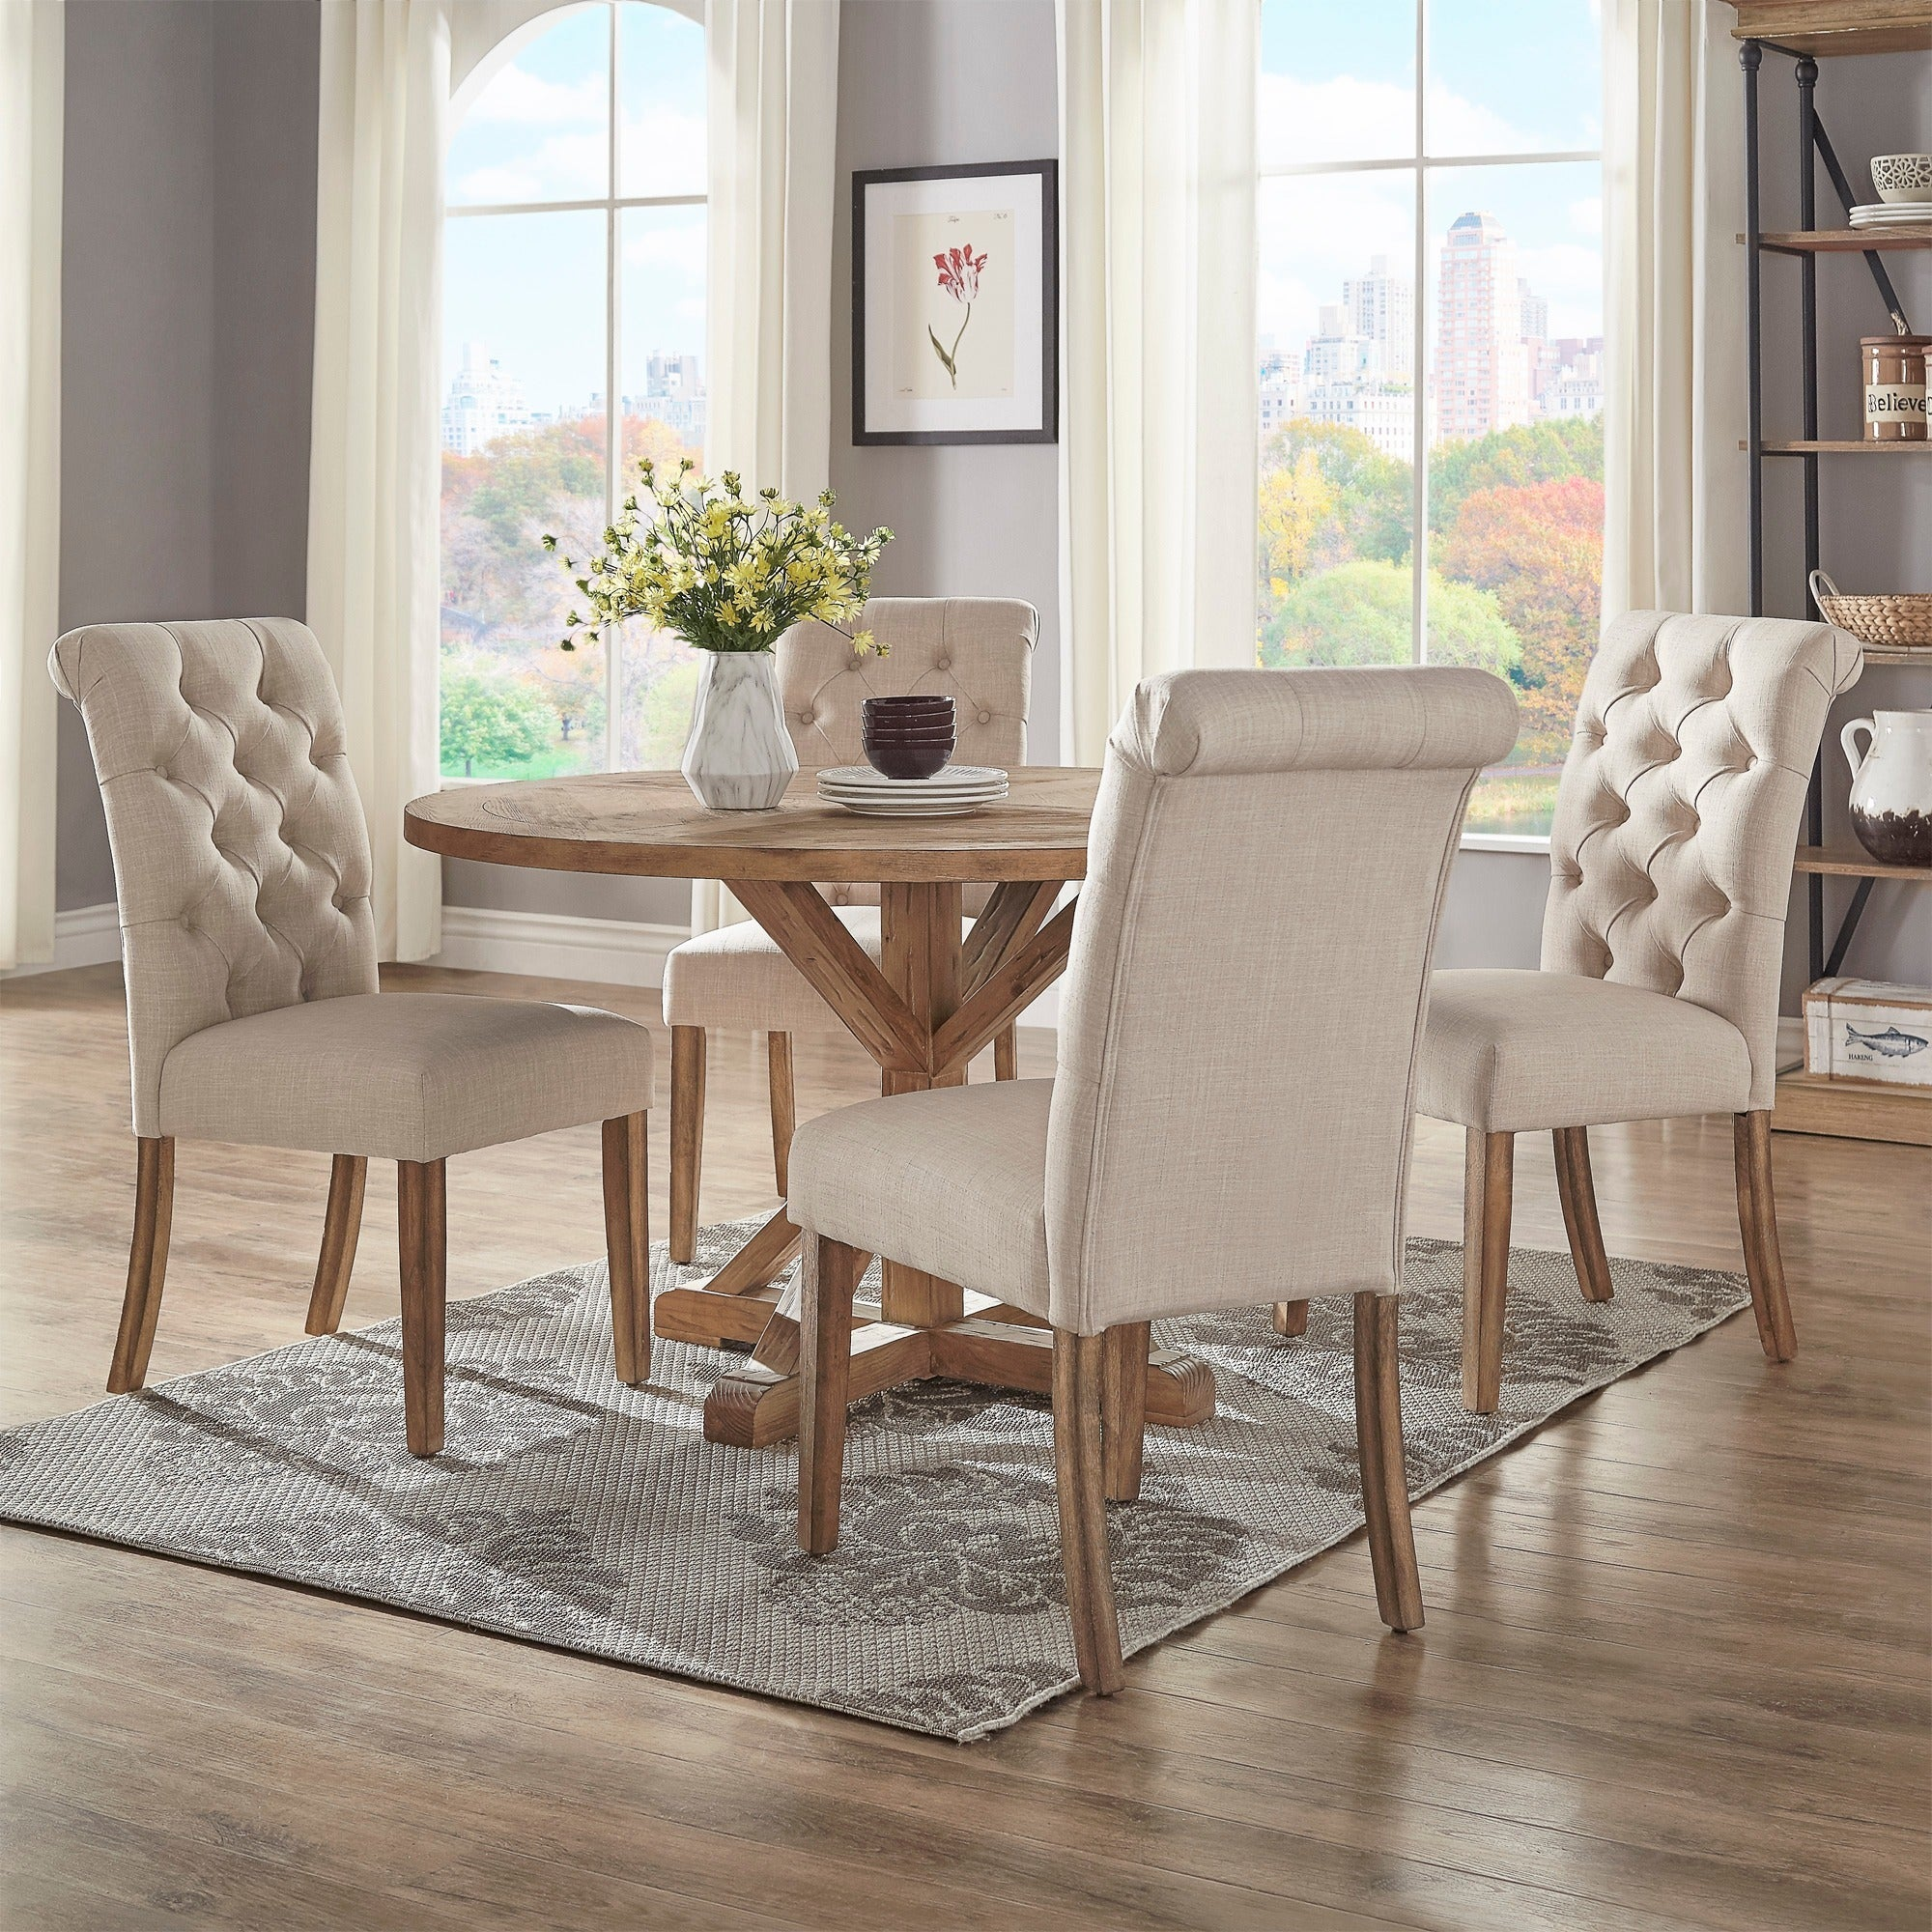 Round dining table set Traditional Benchwright Rustic Xbase 48inch Round Dining Table Set By Inspire Artisan Overstock Shop Benchwright Rustic Xbase 48inch Round Dining Table Set By